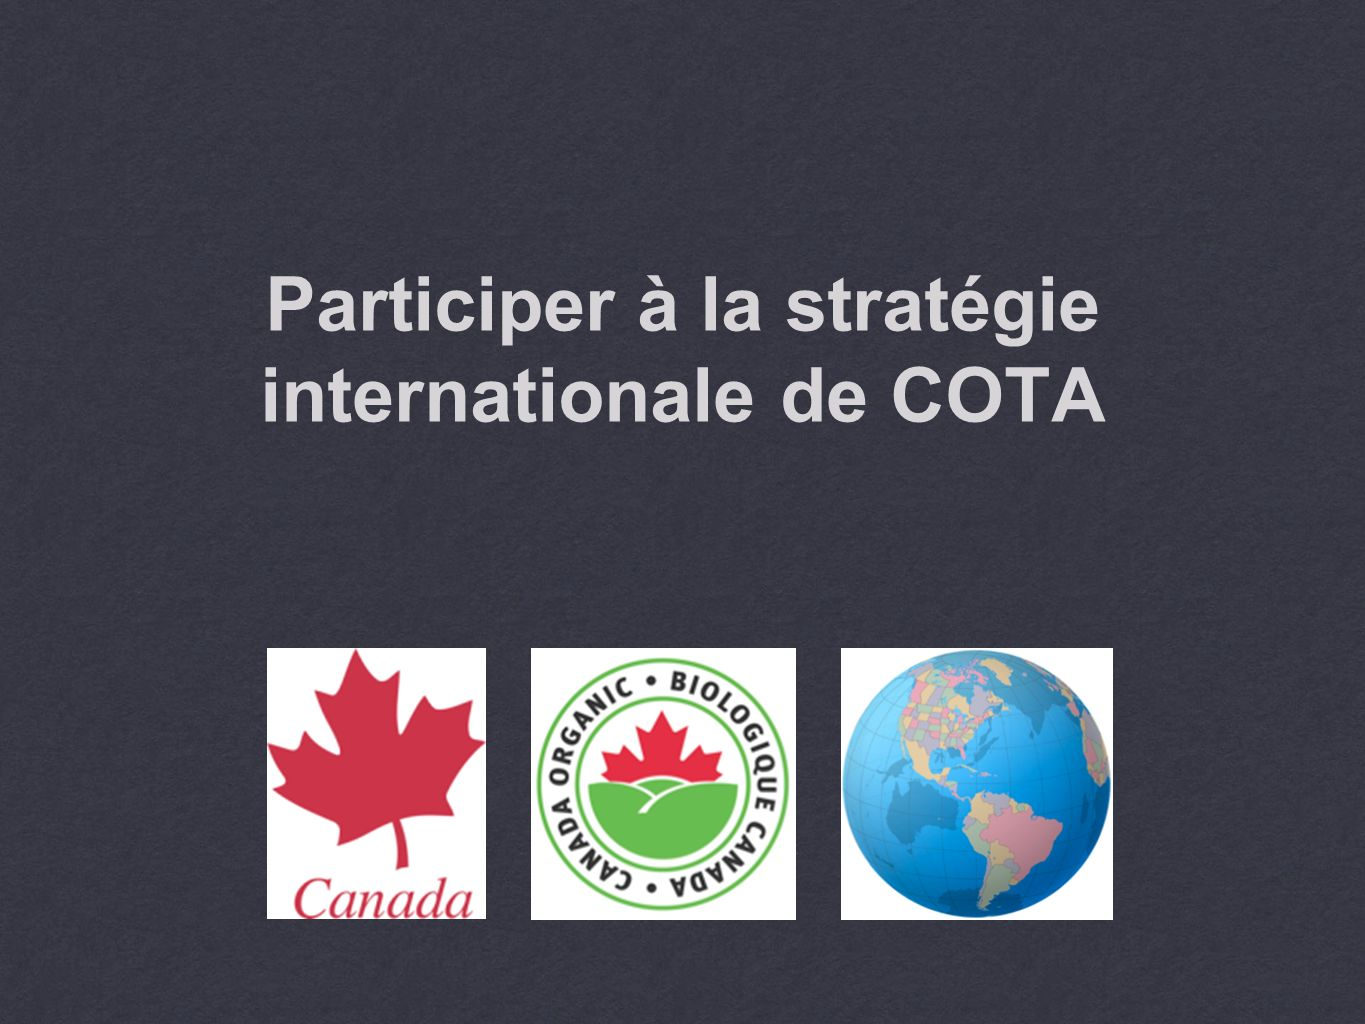 Participer à la stratégie internationale de COTA